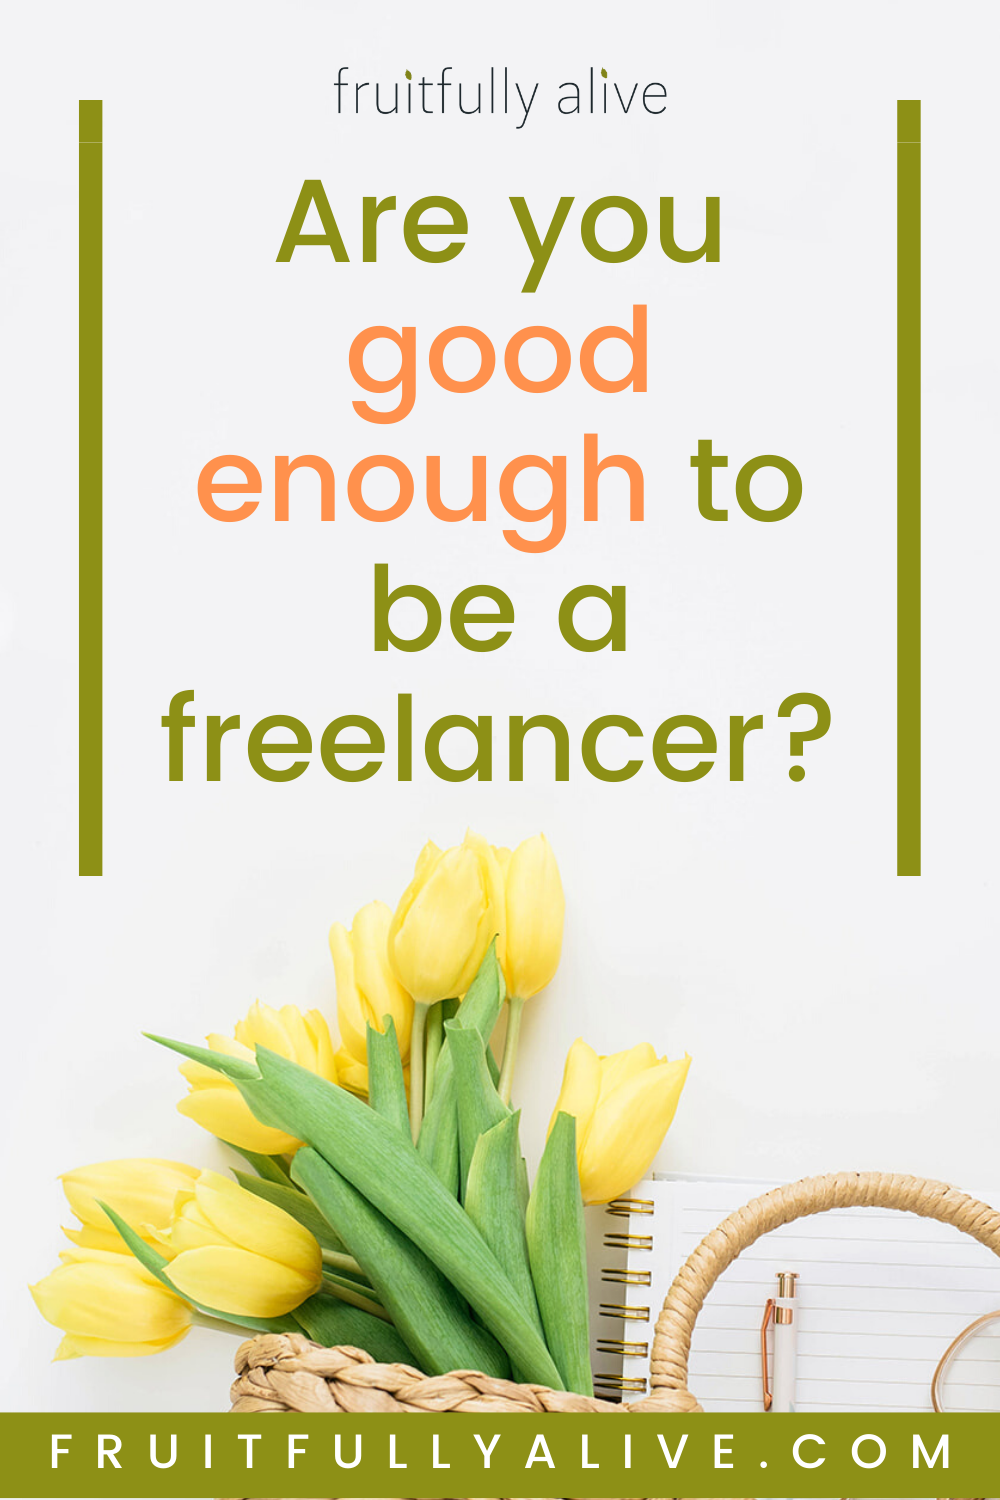 Are you good enough to be a freelancer?